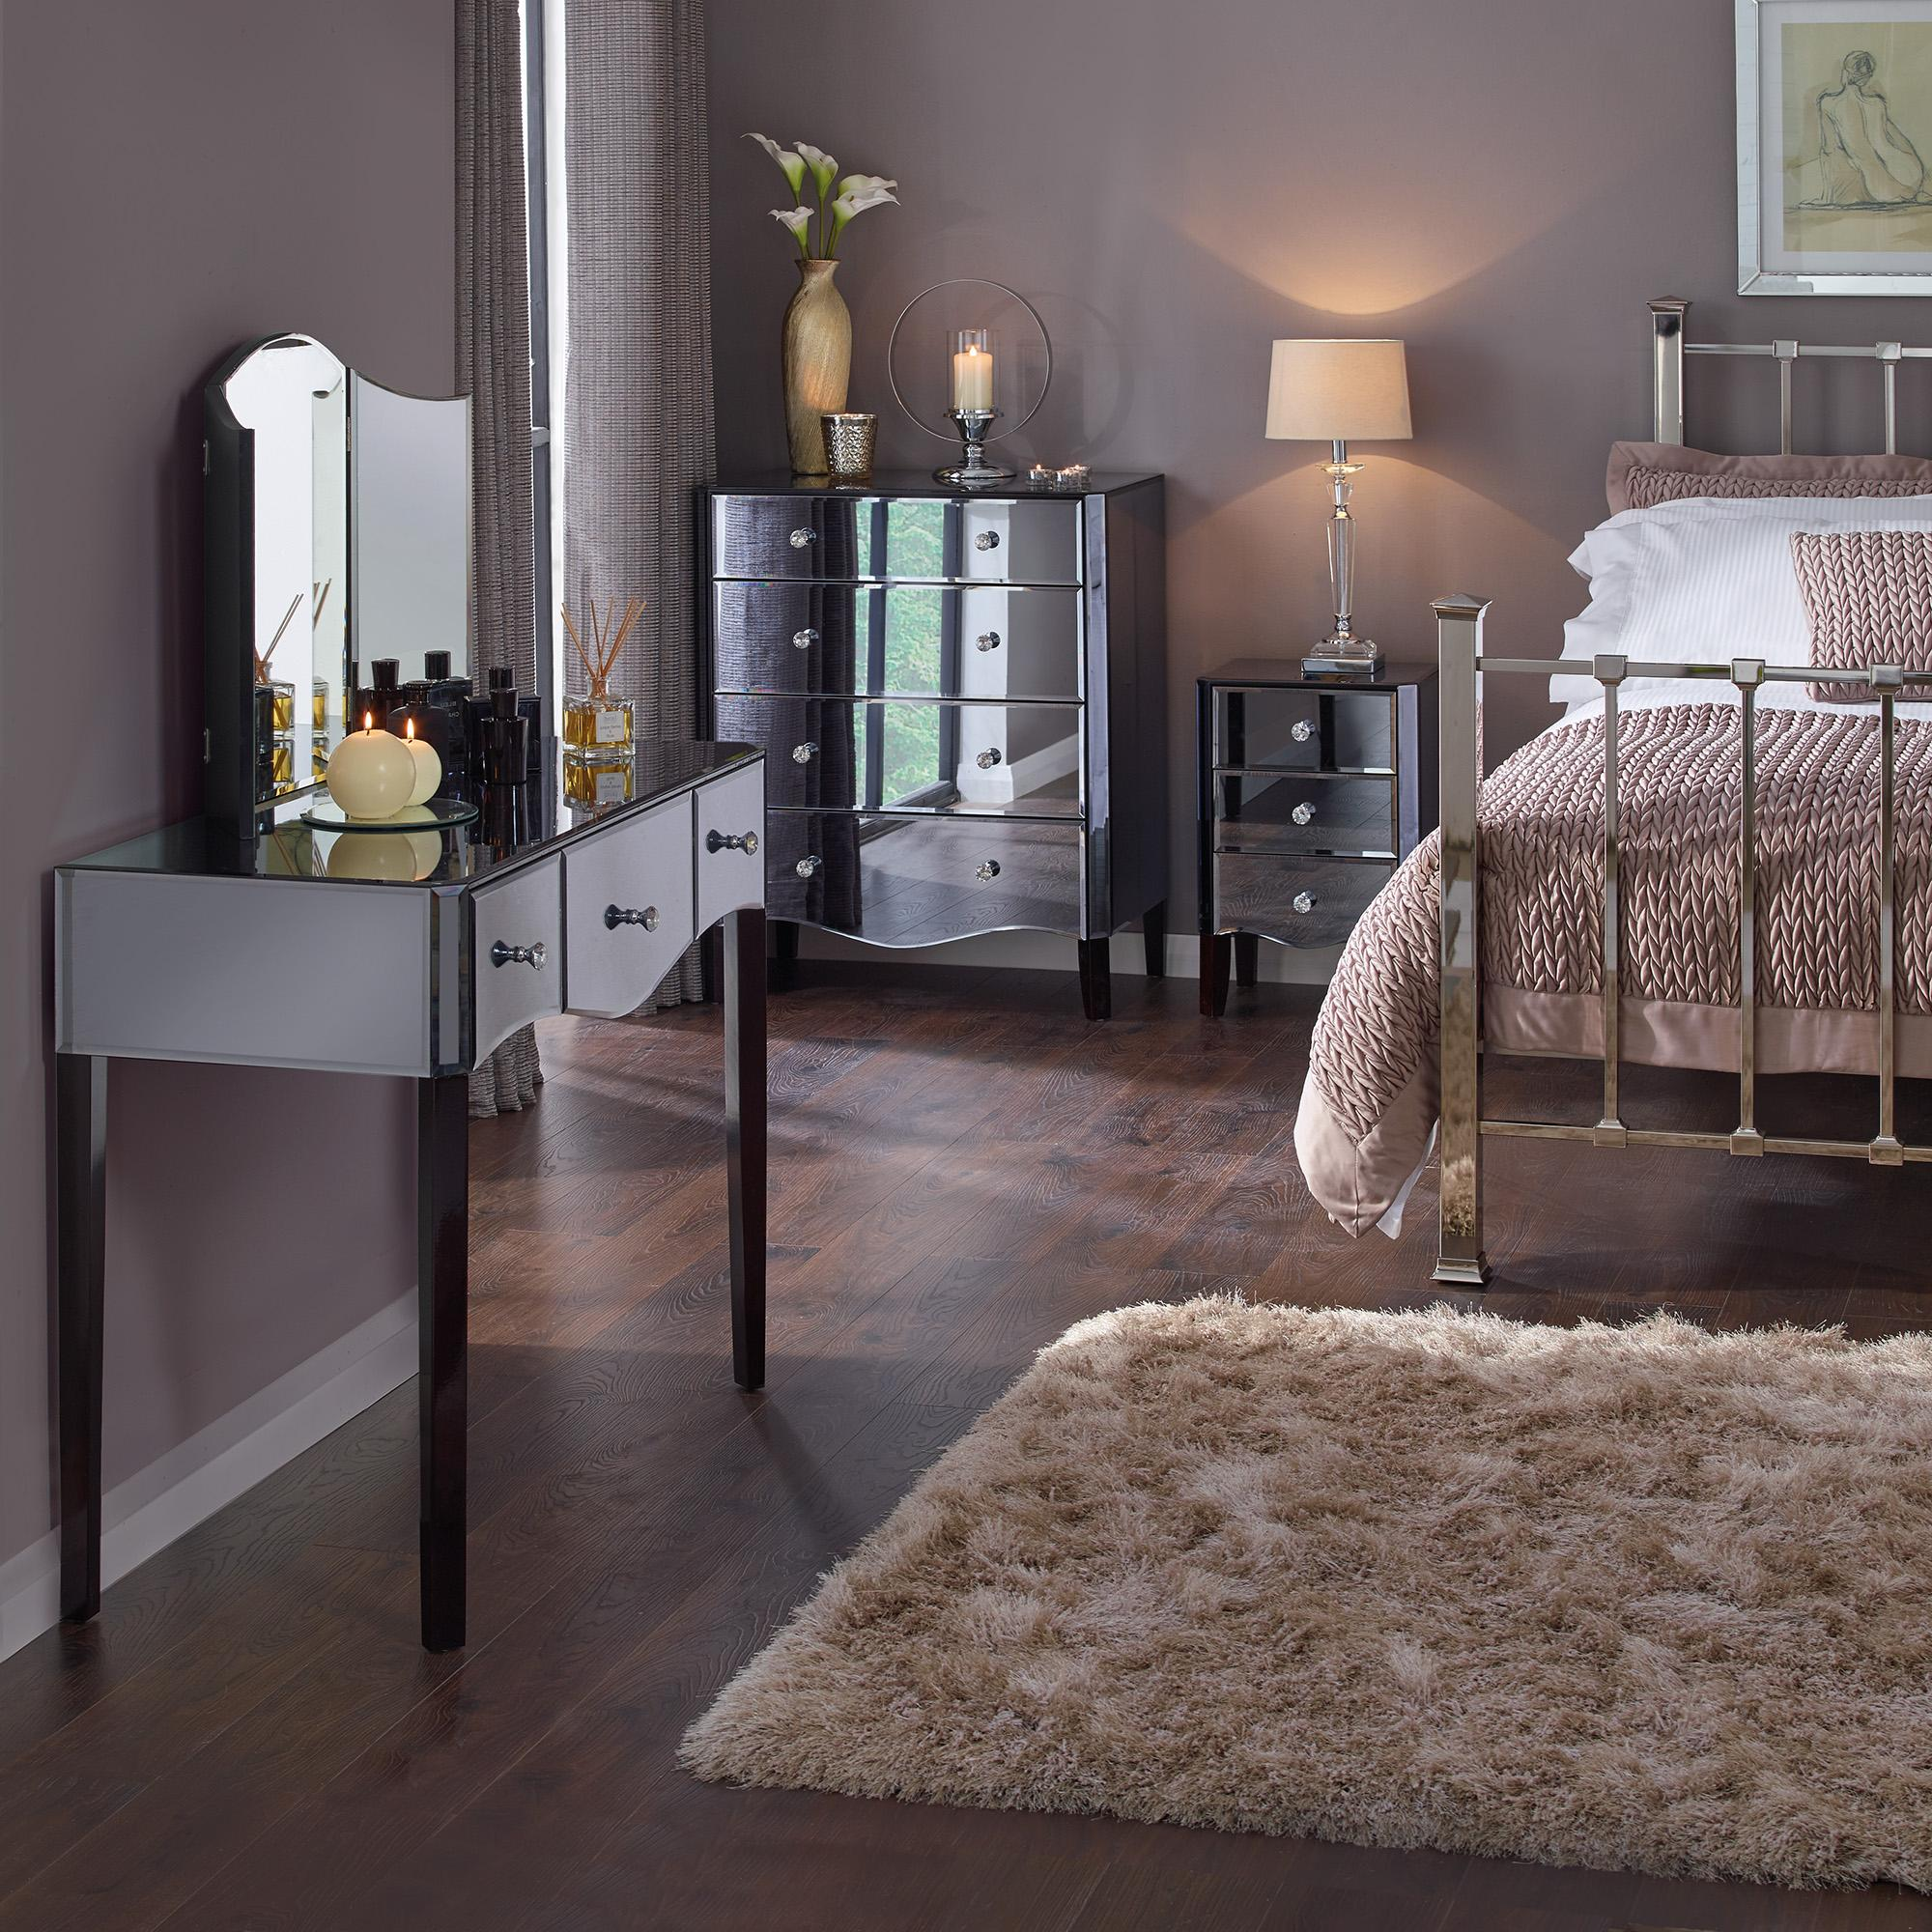 Images of mirrored bedroom furniture viola smoke bedroom collection jfhvrnx